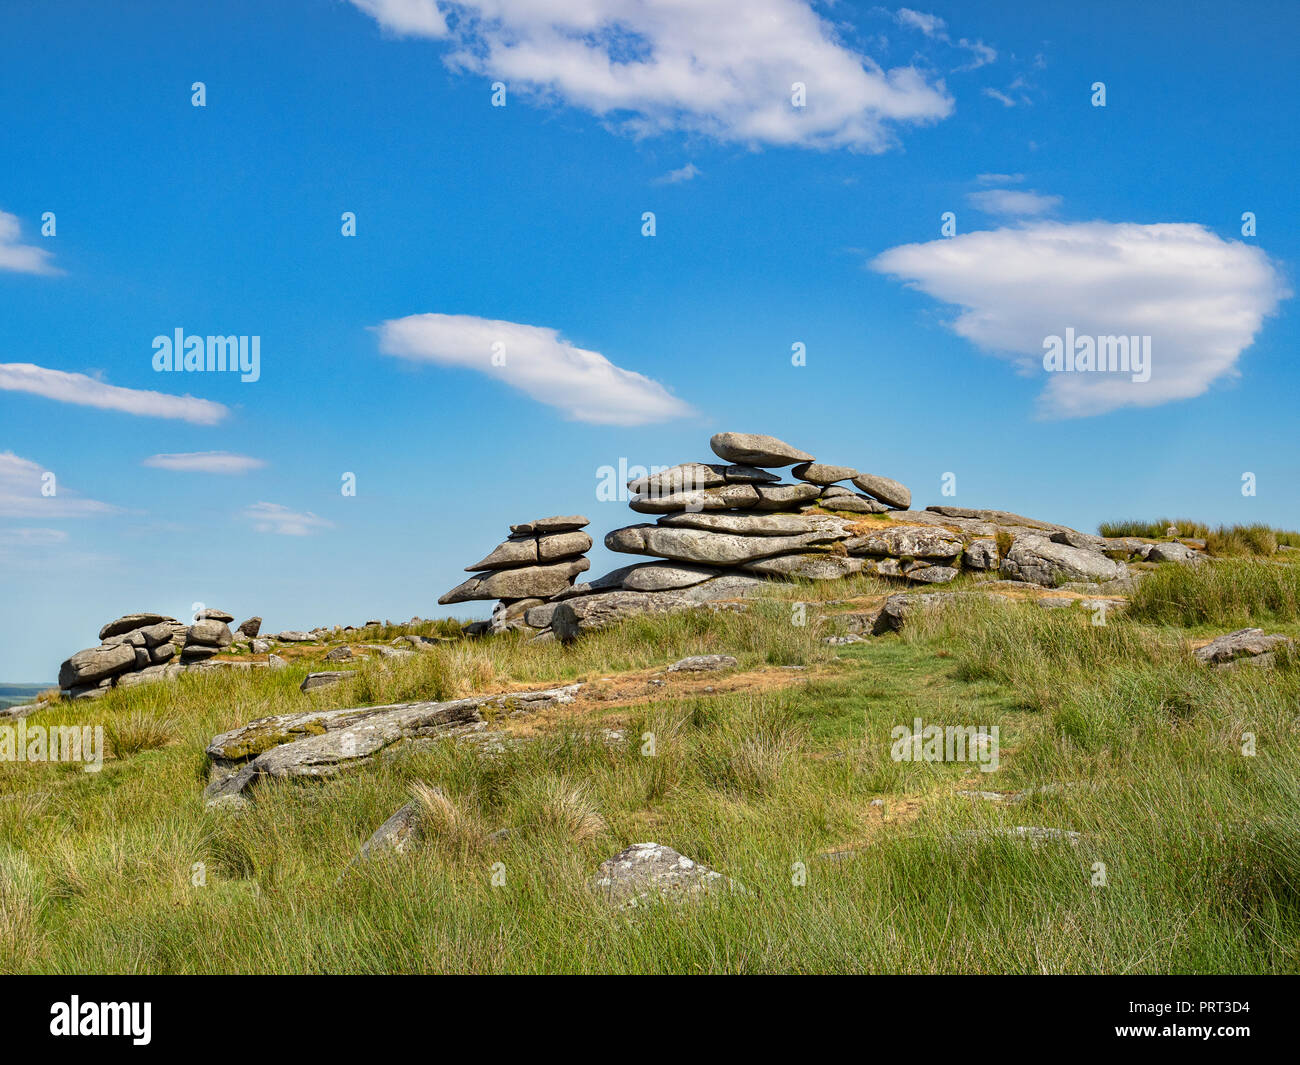 Massive granite tors on Stowe's Hill, Bodmin Moor, Cornwall, UK on a bright sunny day. Stock Photo